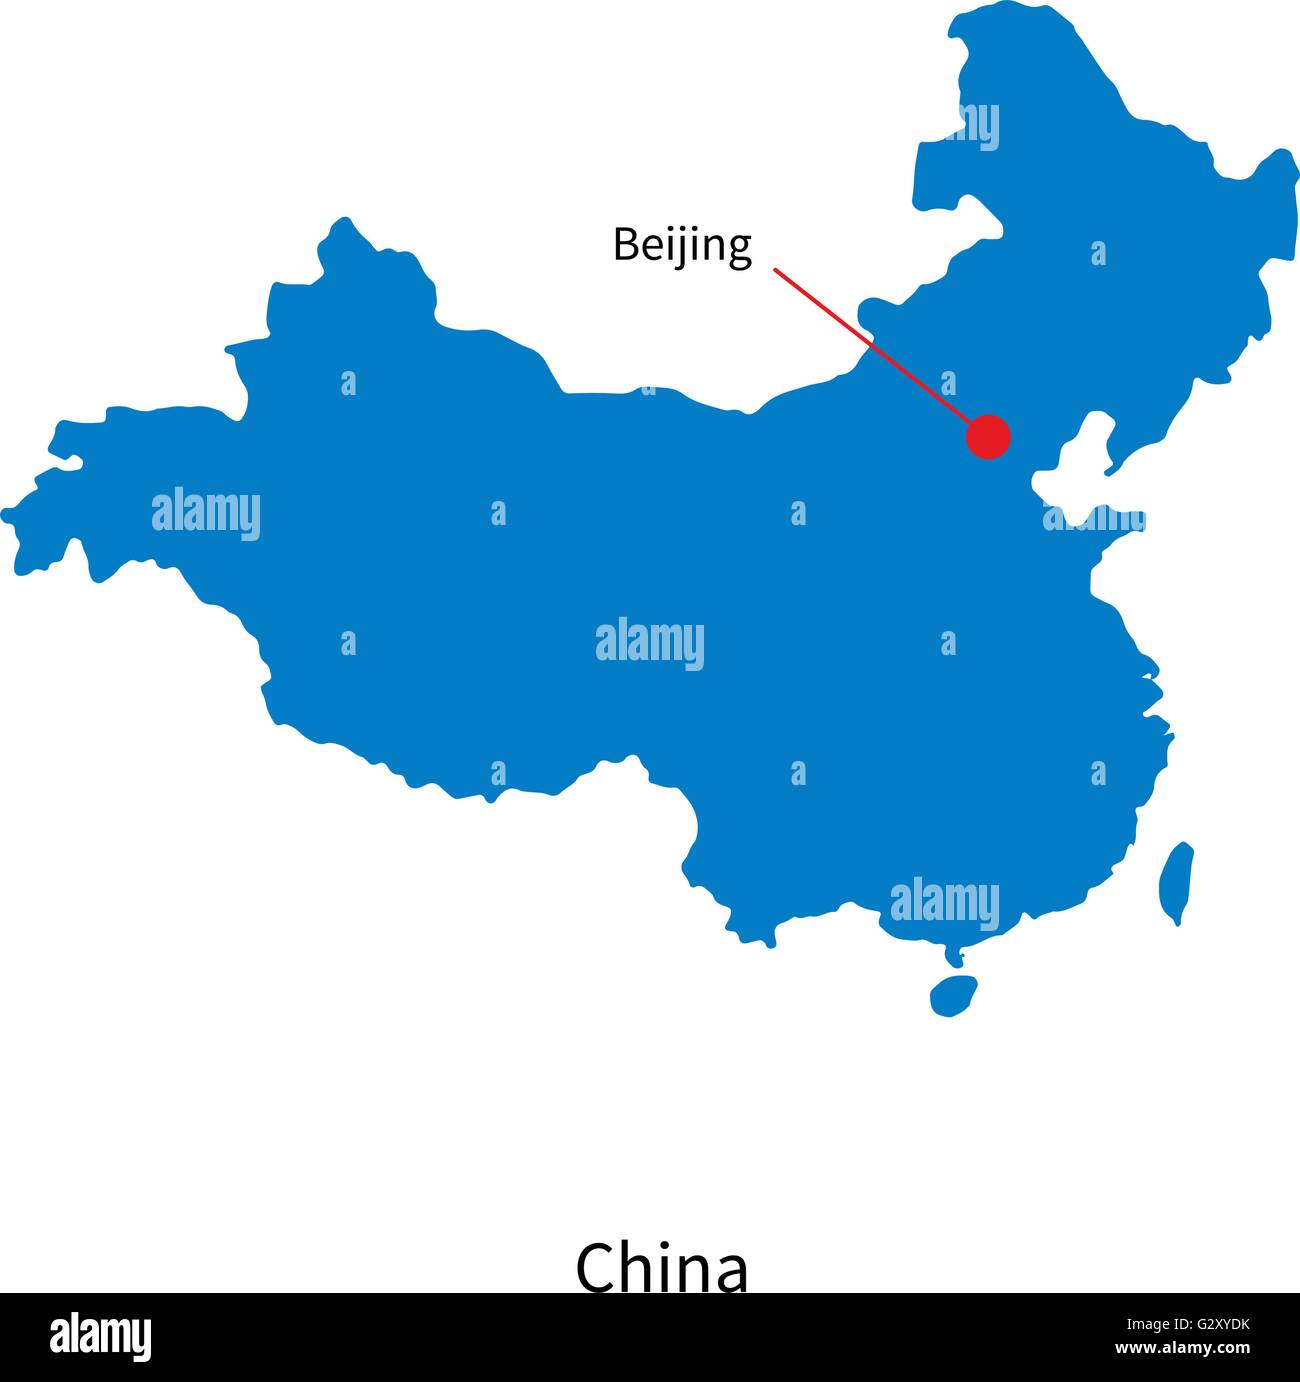 Detailed vector map of China and capital city Beijing Stock Vector